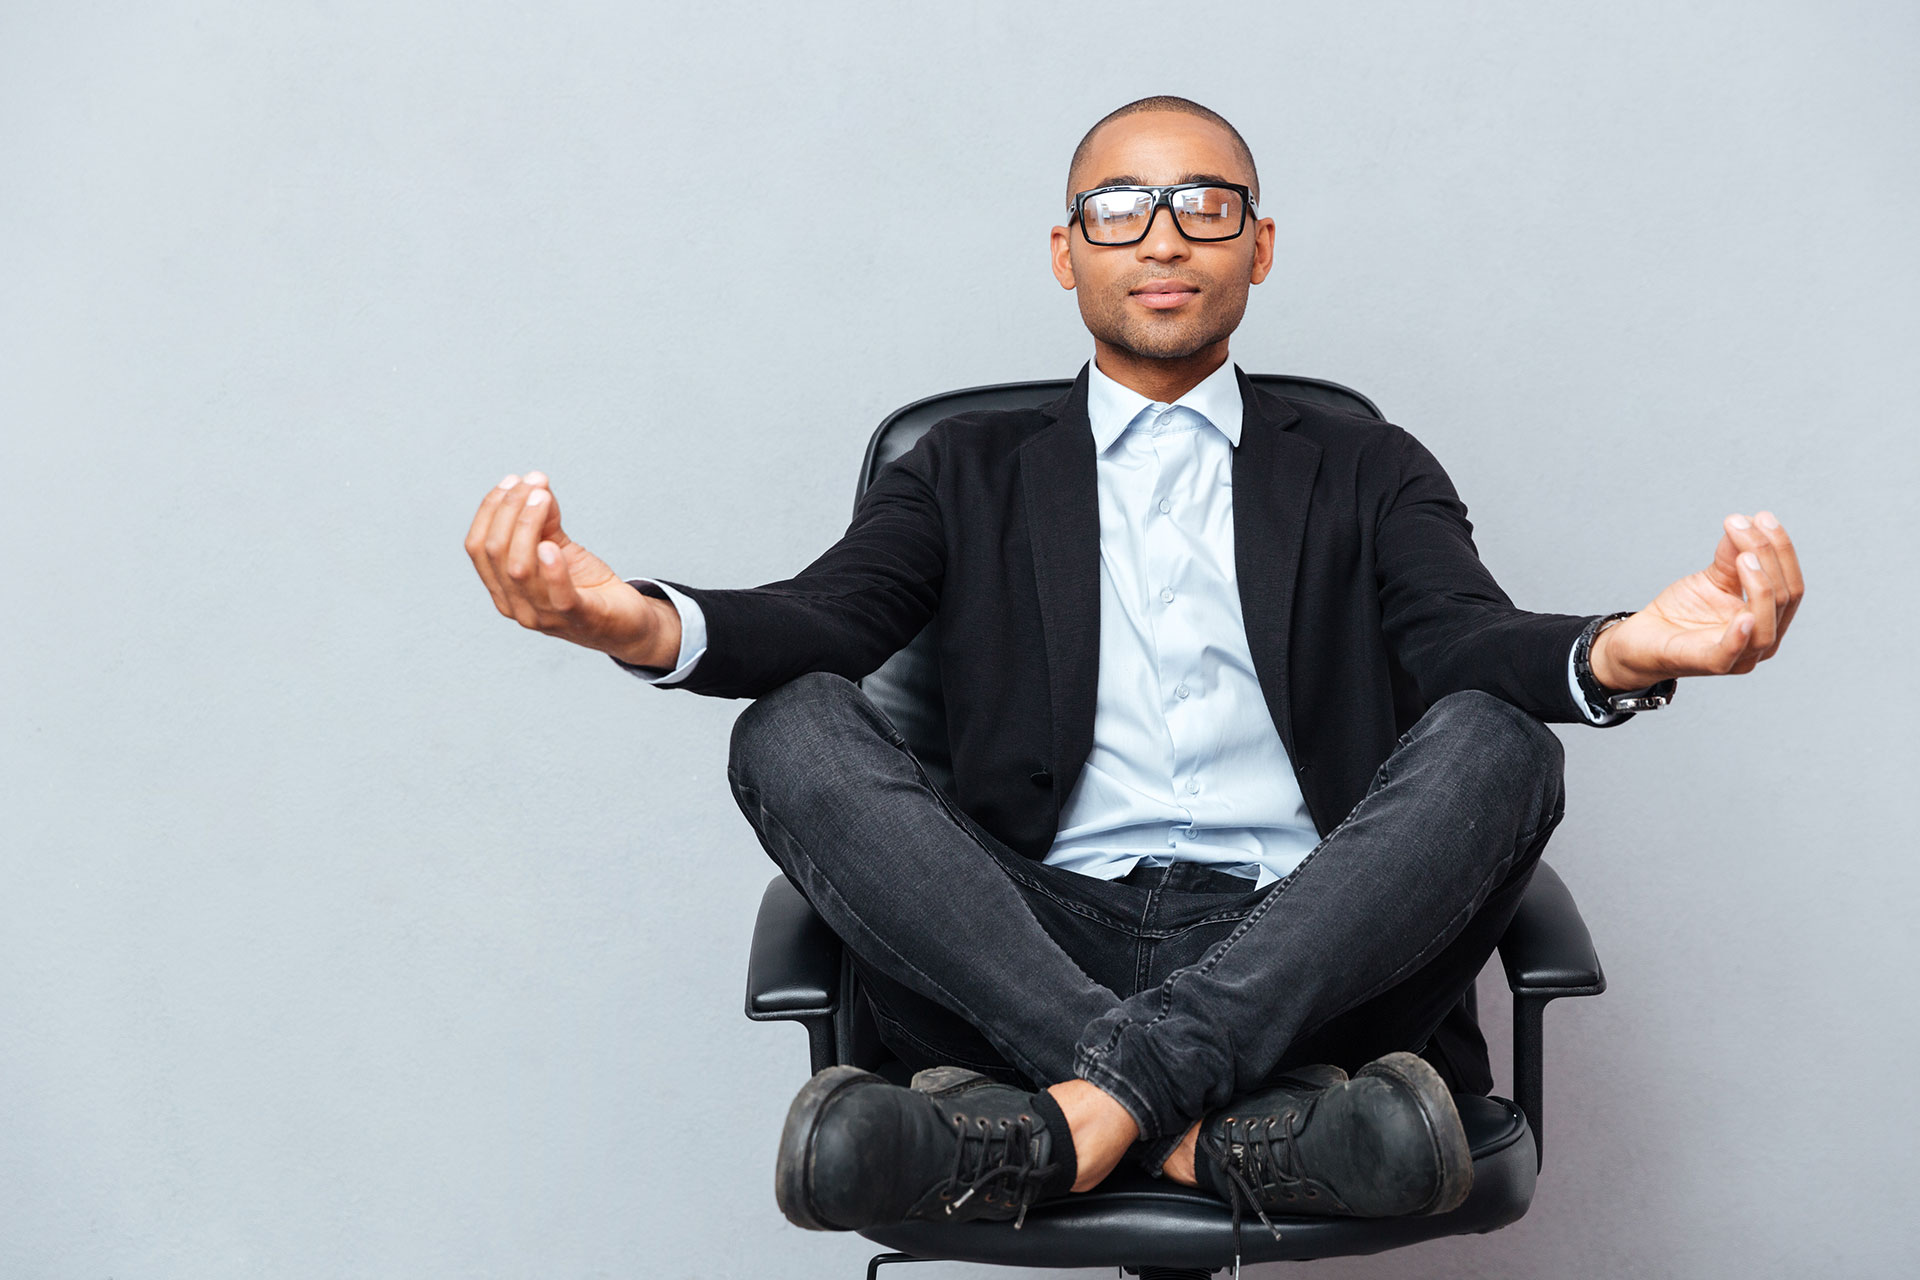 a business man meditation at work in his office chair